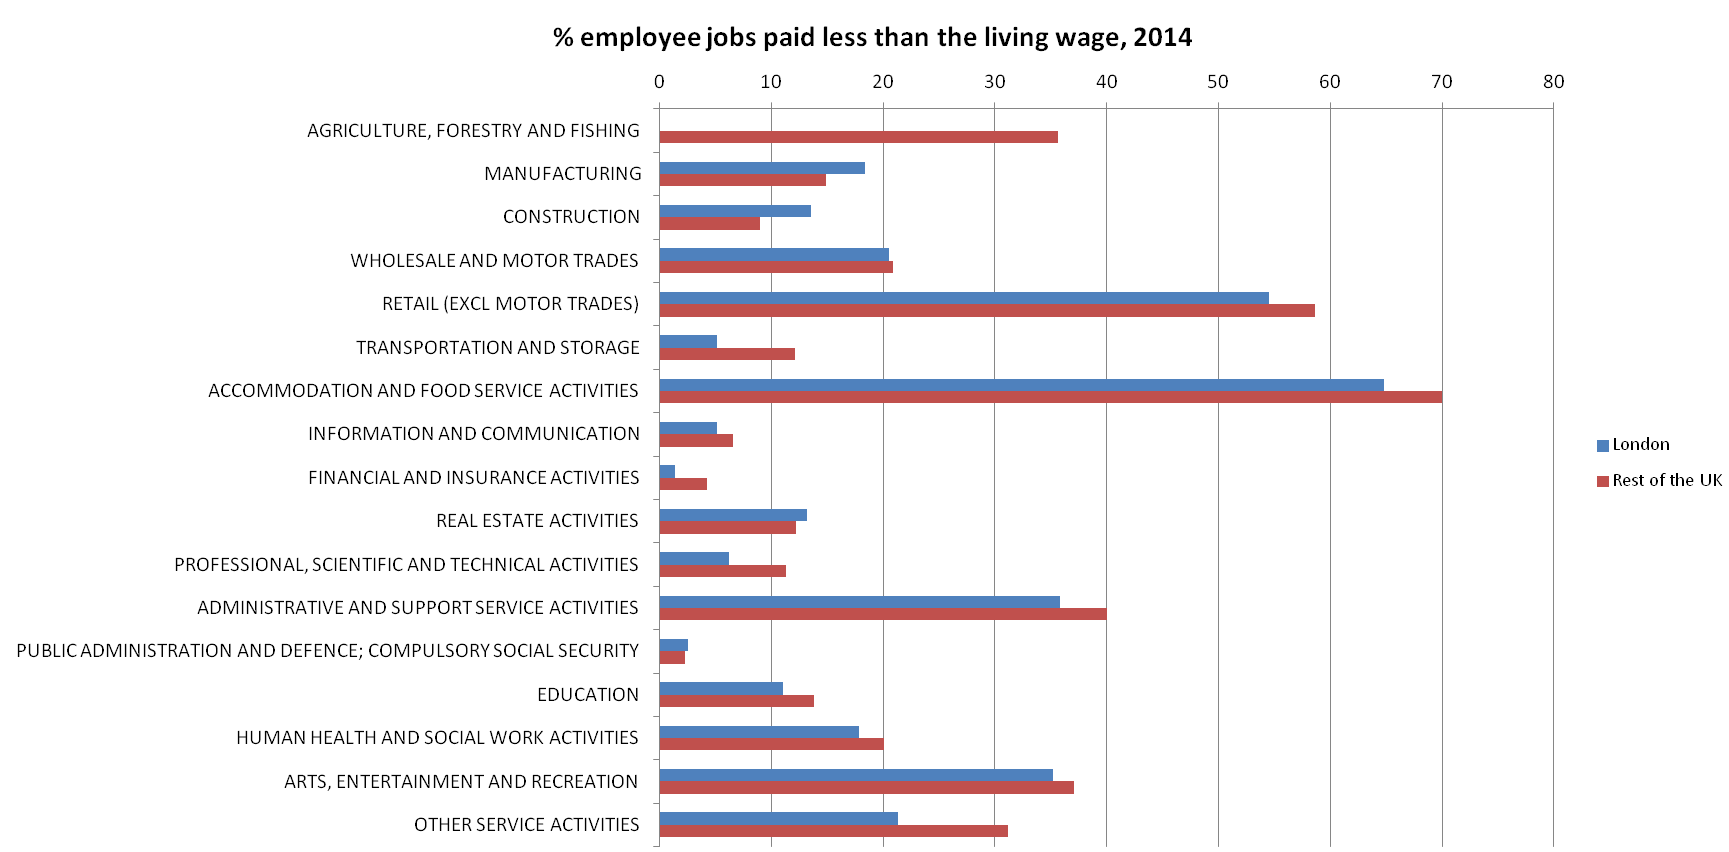 Figure 7: Proportions of employee jobs paid less than the living wage in 2014, by industry